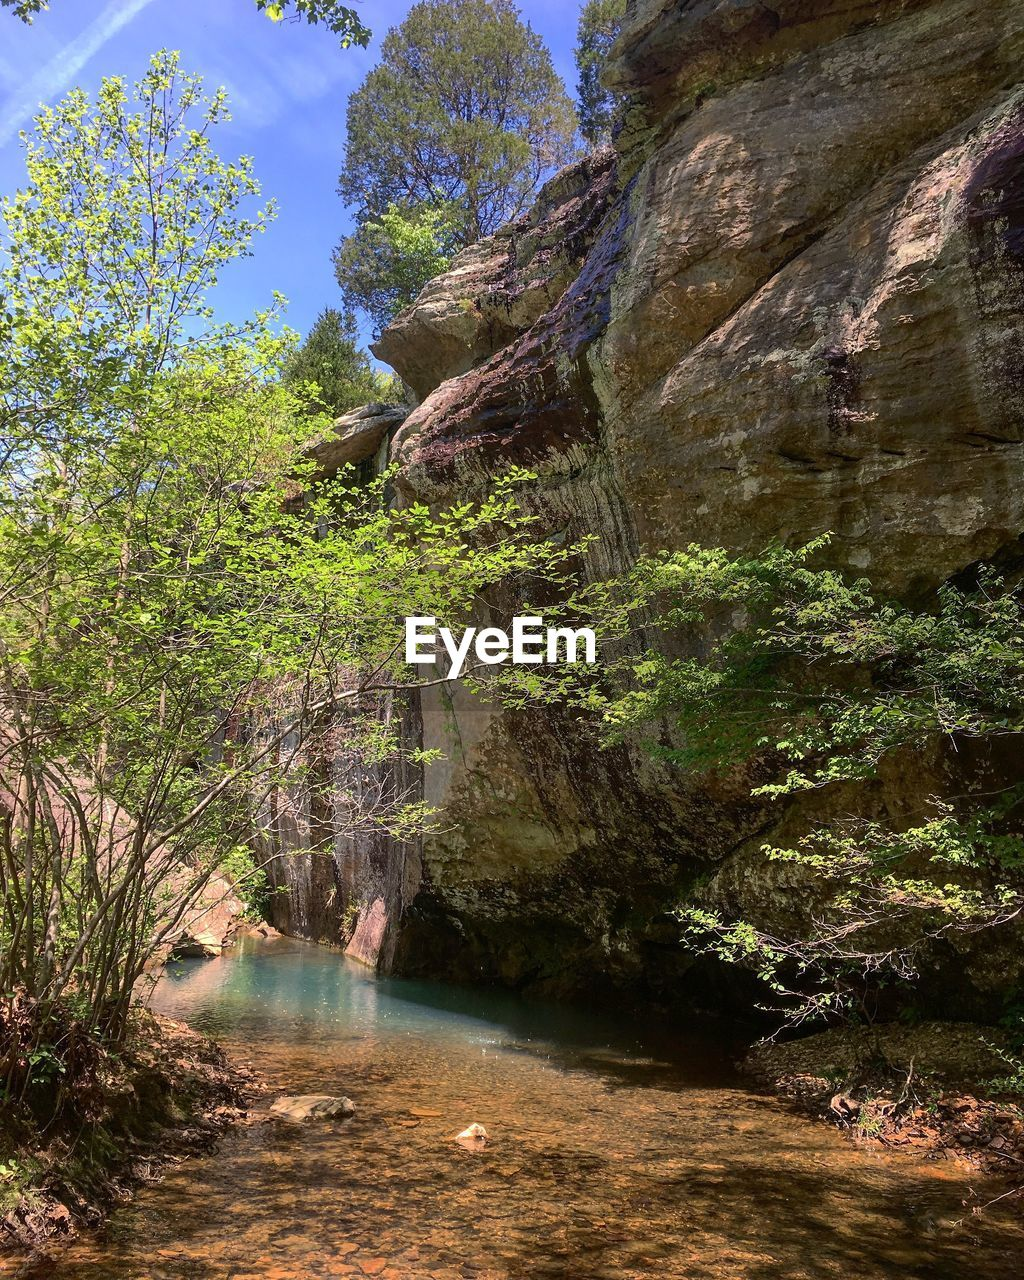 tree, water, plant, rock, tranquility, nature, rock - object, scenics - nature, forest, beauty in nature, day, tranquil scene, solid, land, rock formation, growth, river, non-urban scene, no people, outdoors, flowing water, flowing